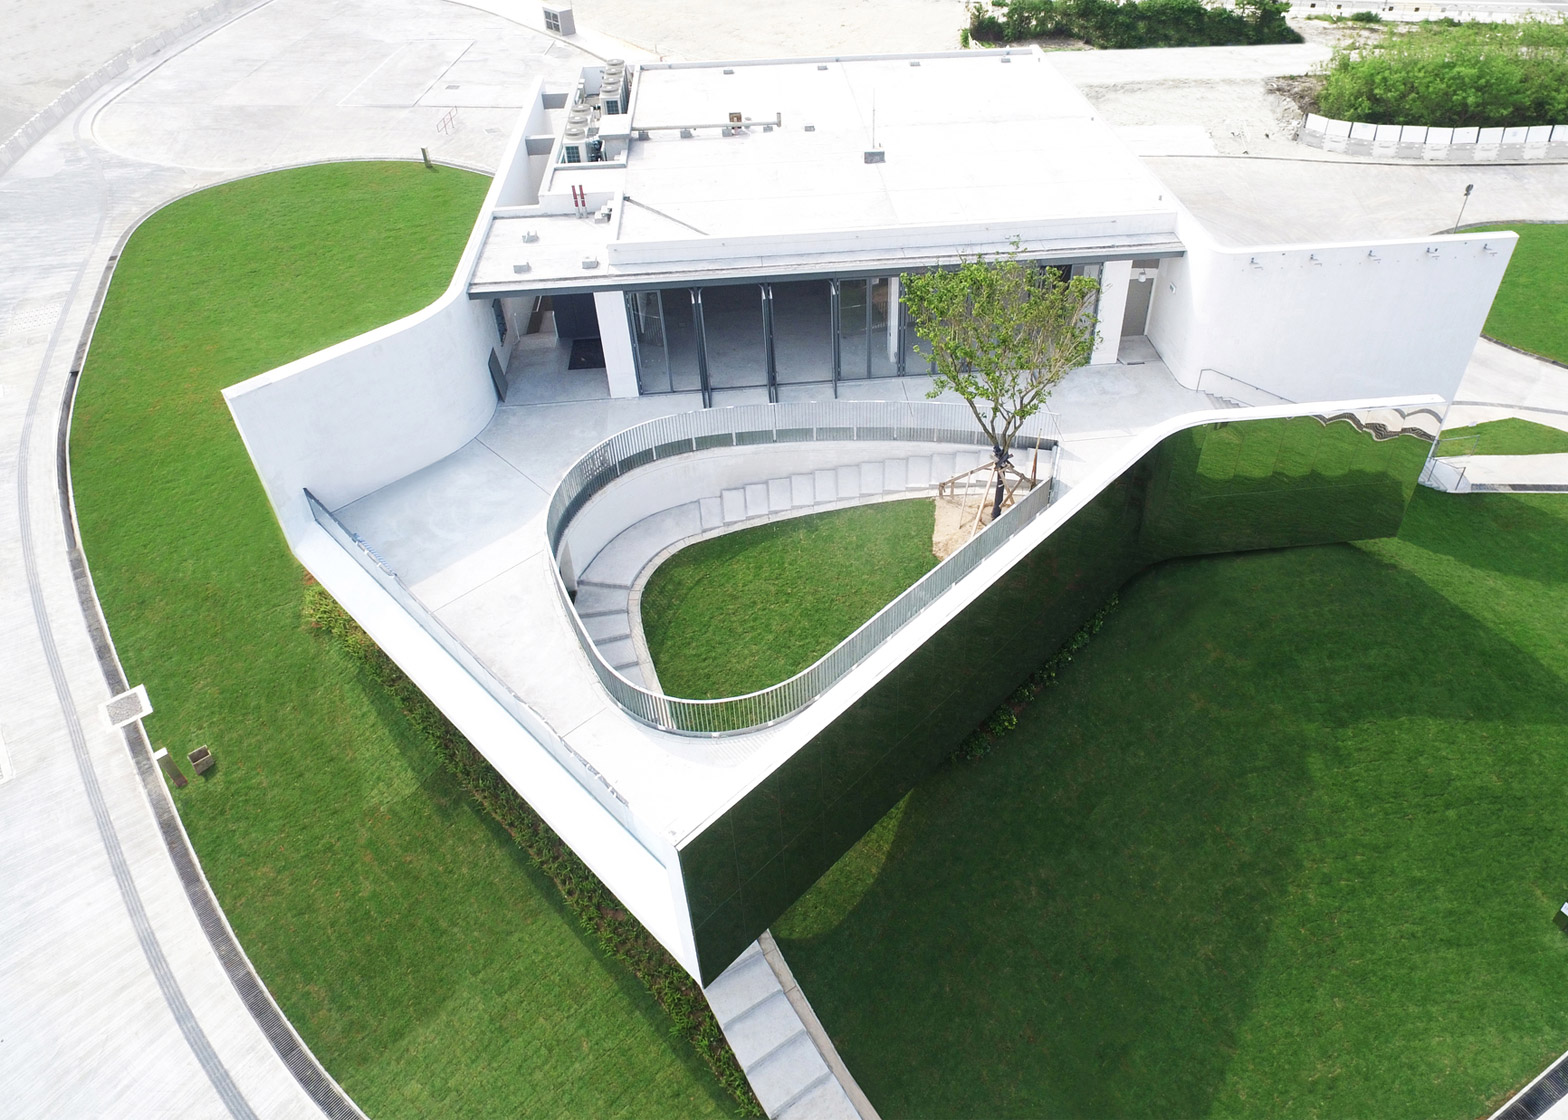 M+ museum opens gallery pavilion in West Kowloon Cultural District